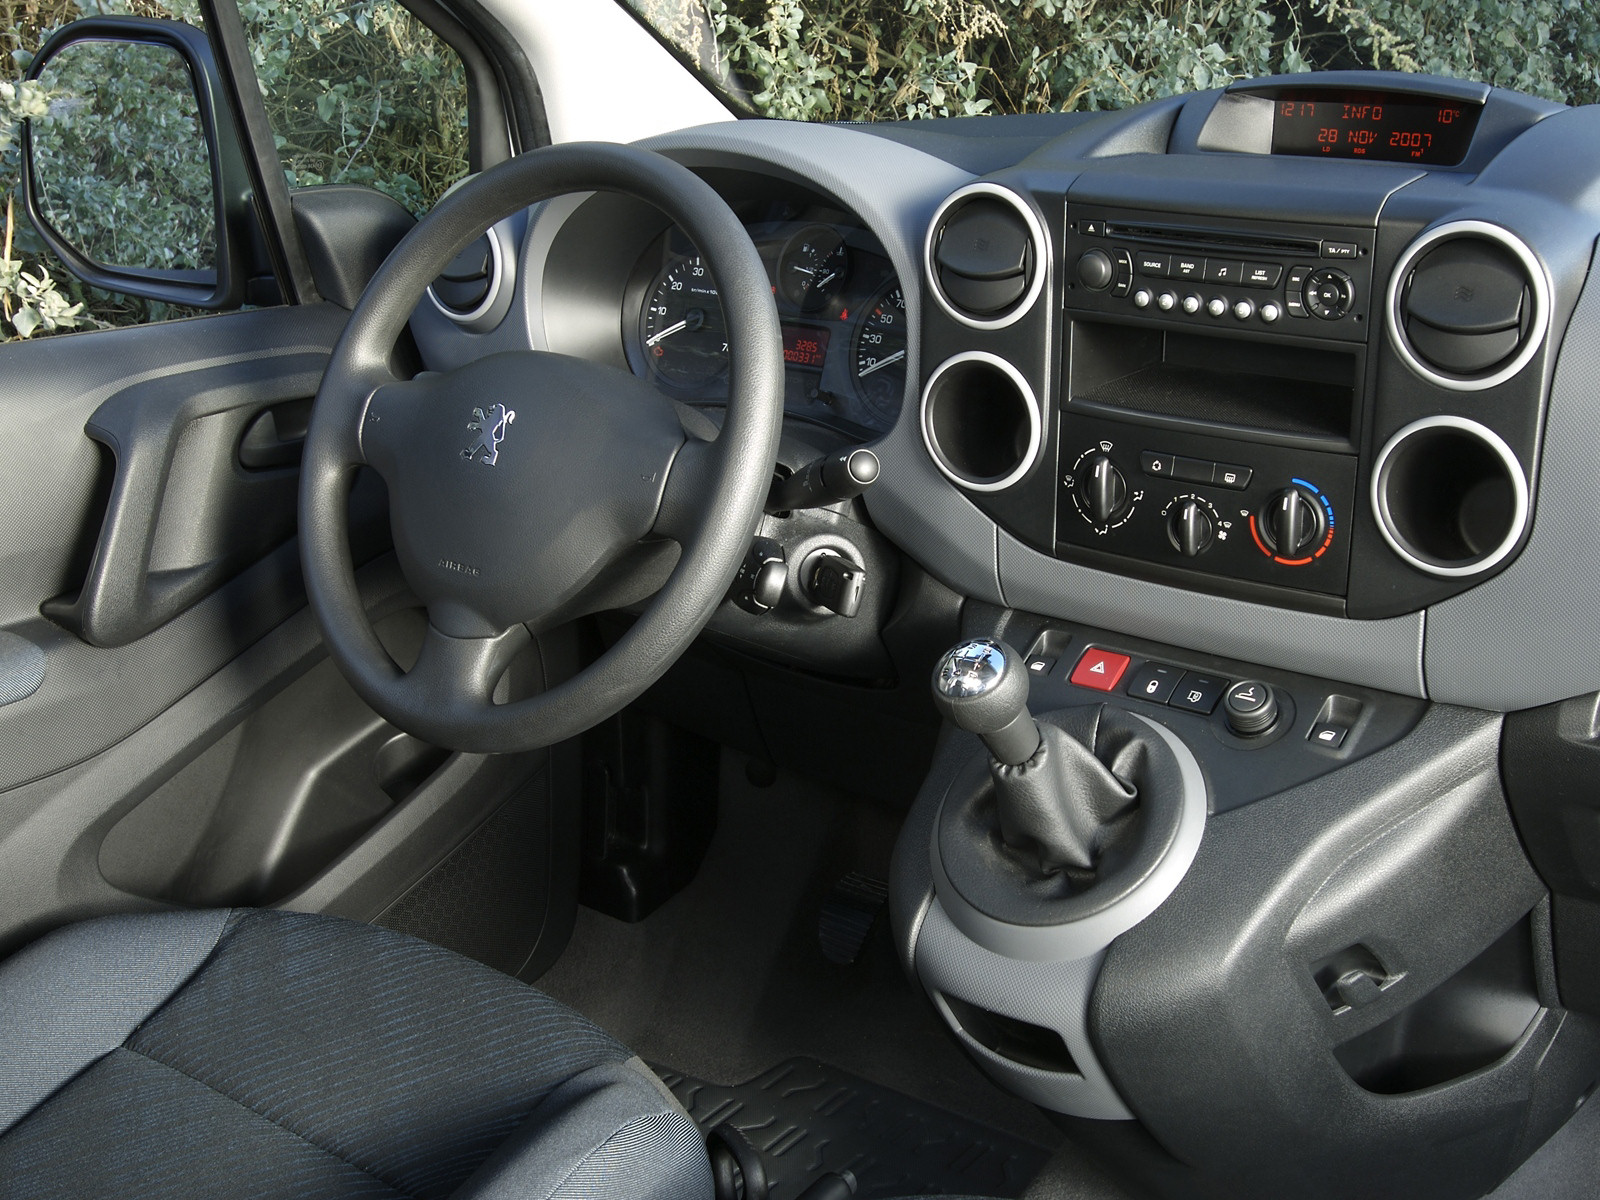 Peugeot Partner 2008 Peugeot Partner 2008 Photo 01 – Car ...